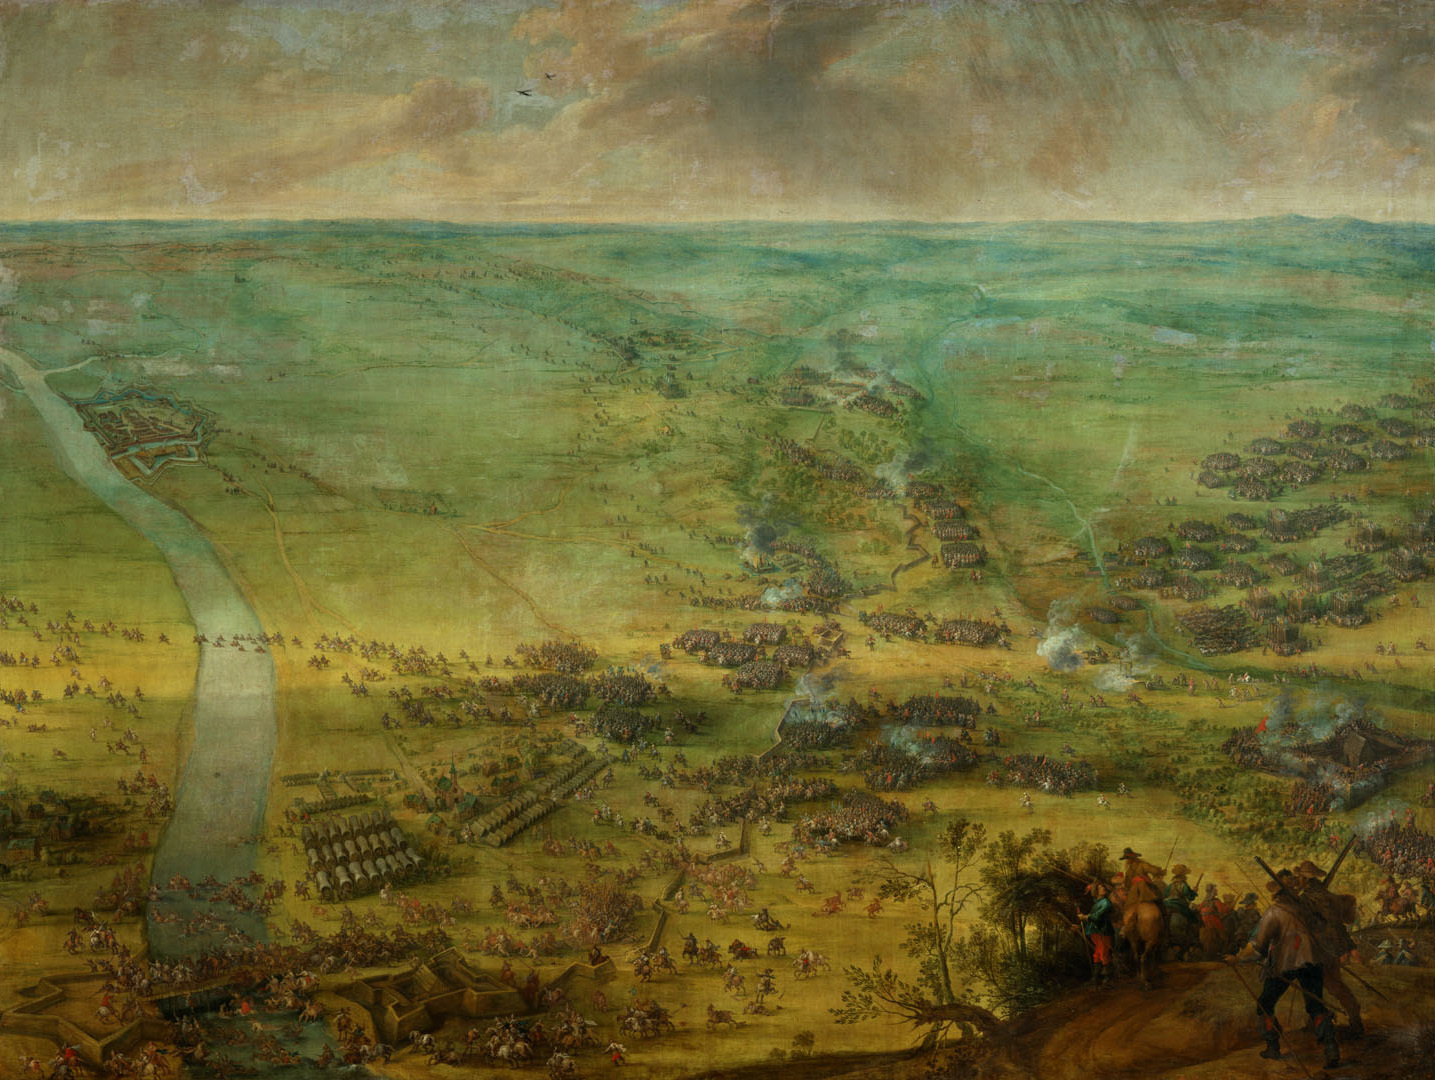 Peter_Snayers_-_The_battle_for_the_relief_of_Thionville._1st_Phase,_1639